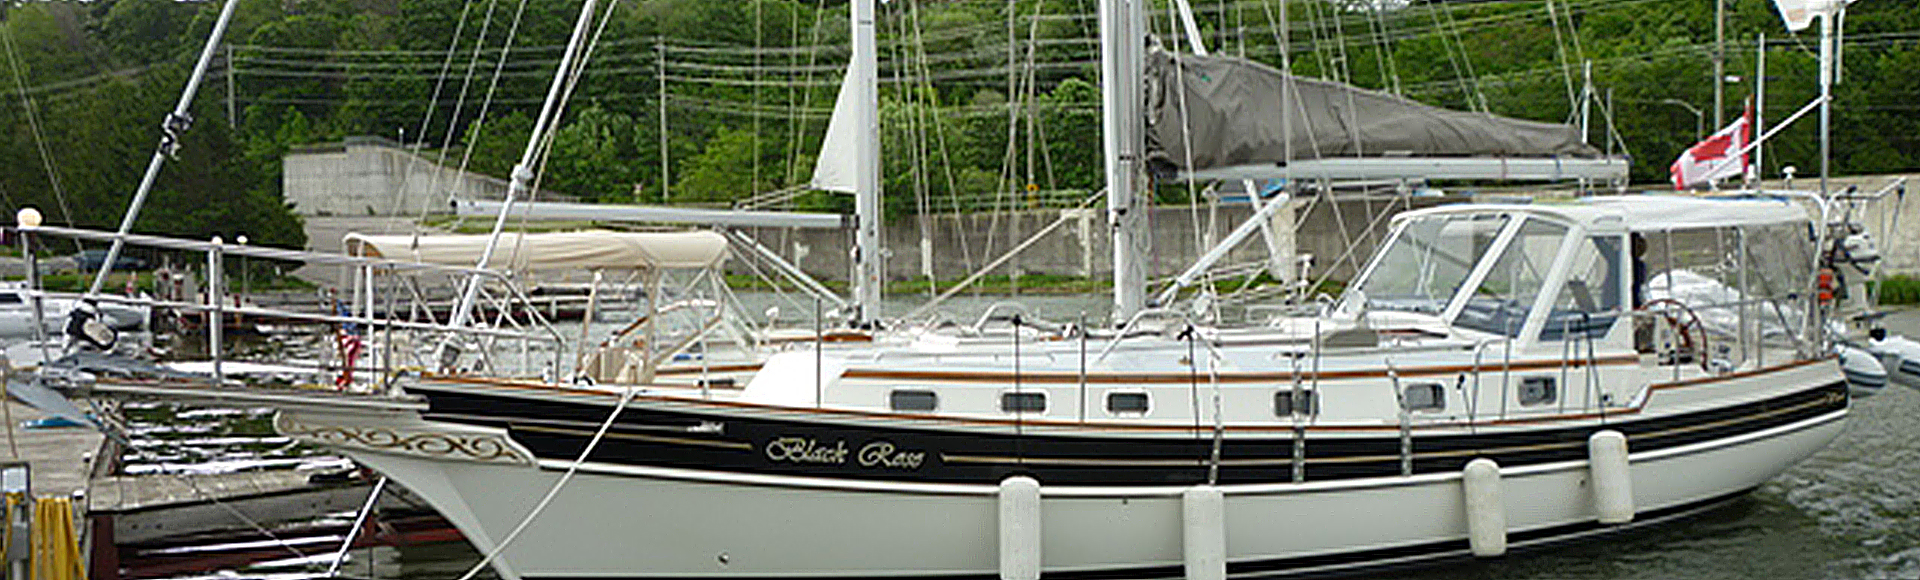 "SALE PENDING WINTER 2020 – 2002 Gozzard 41A Hull #3 ""Black Rose"""